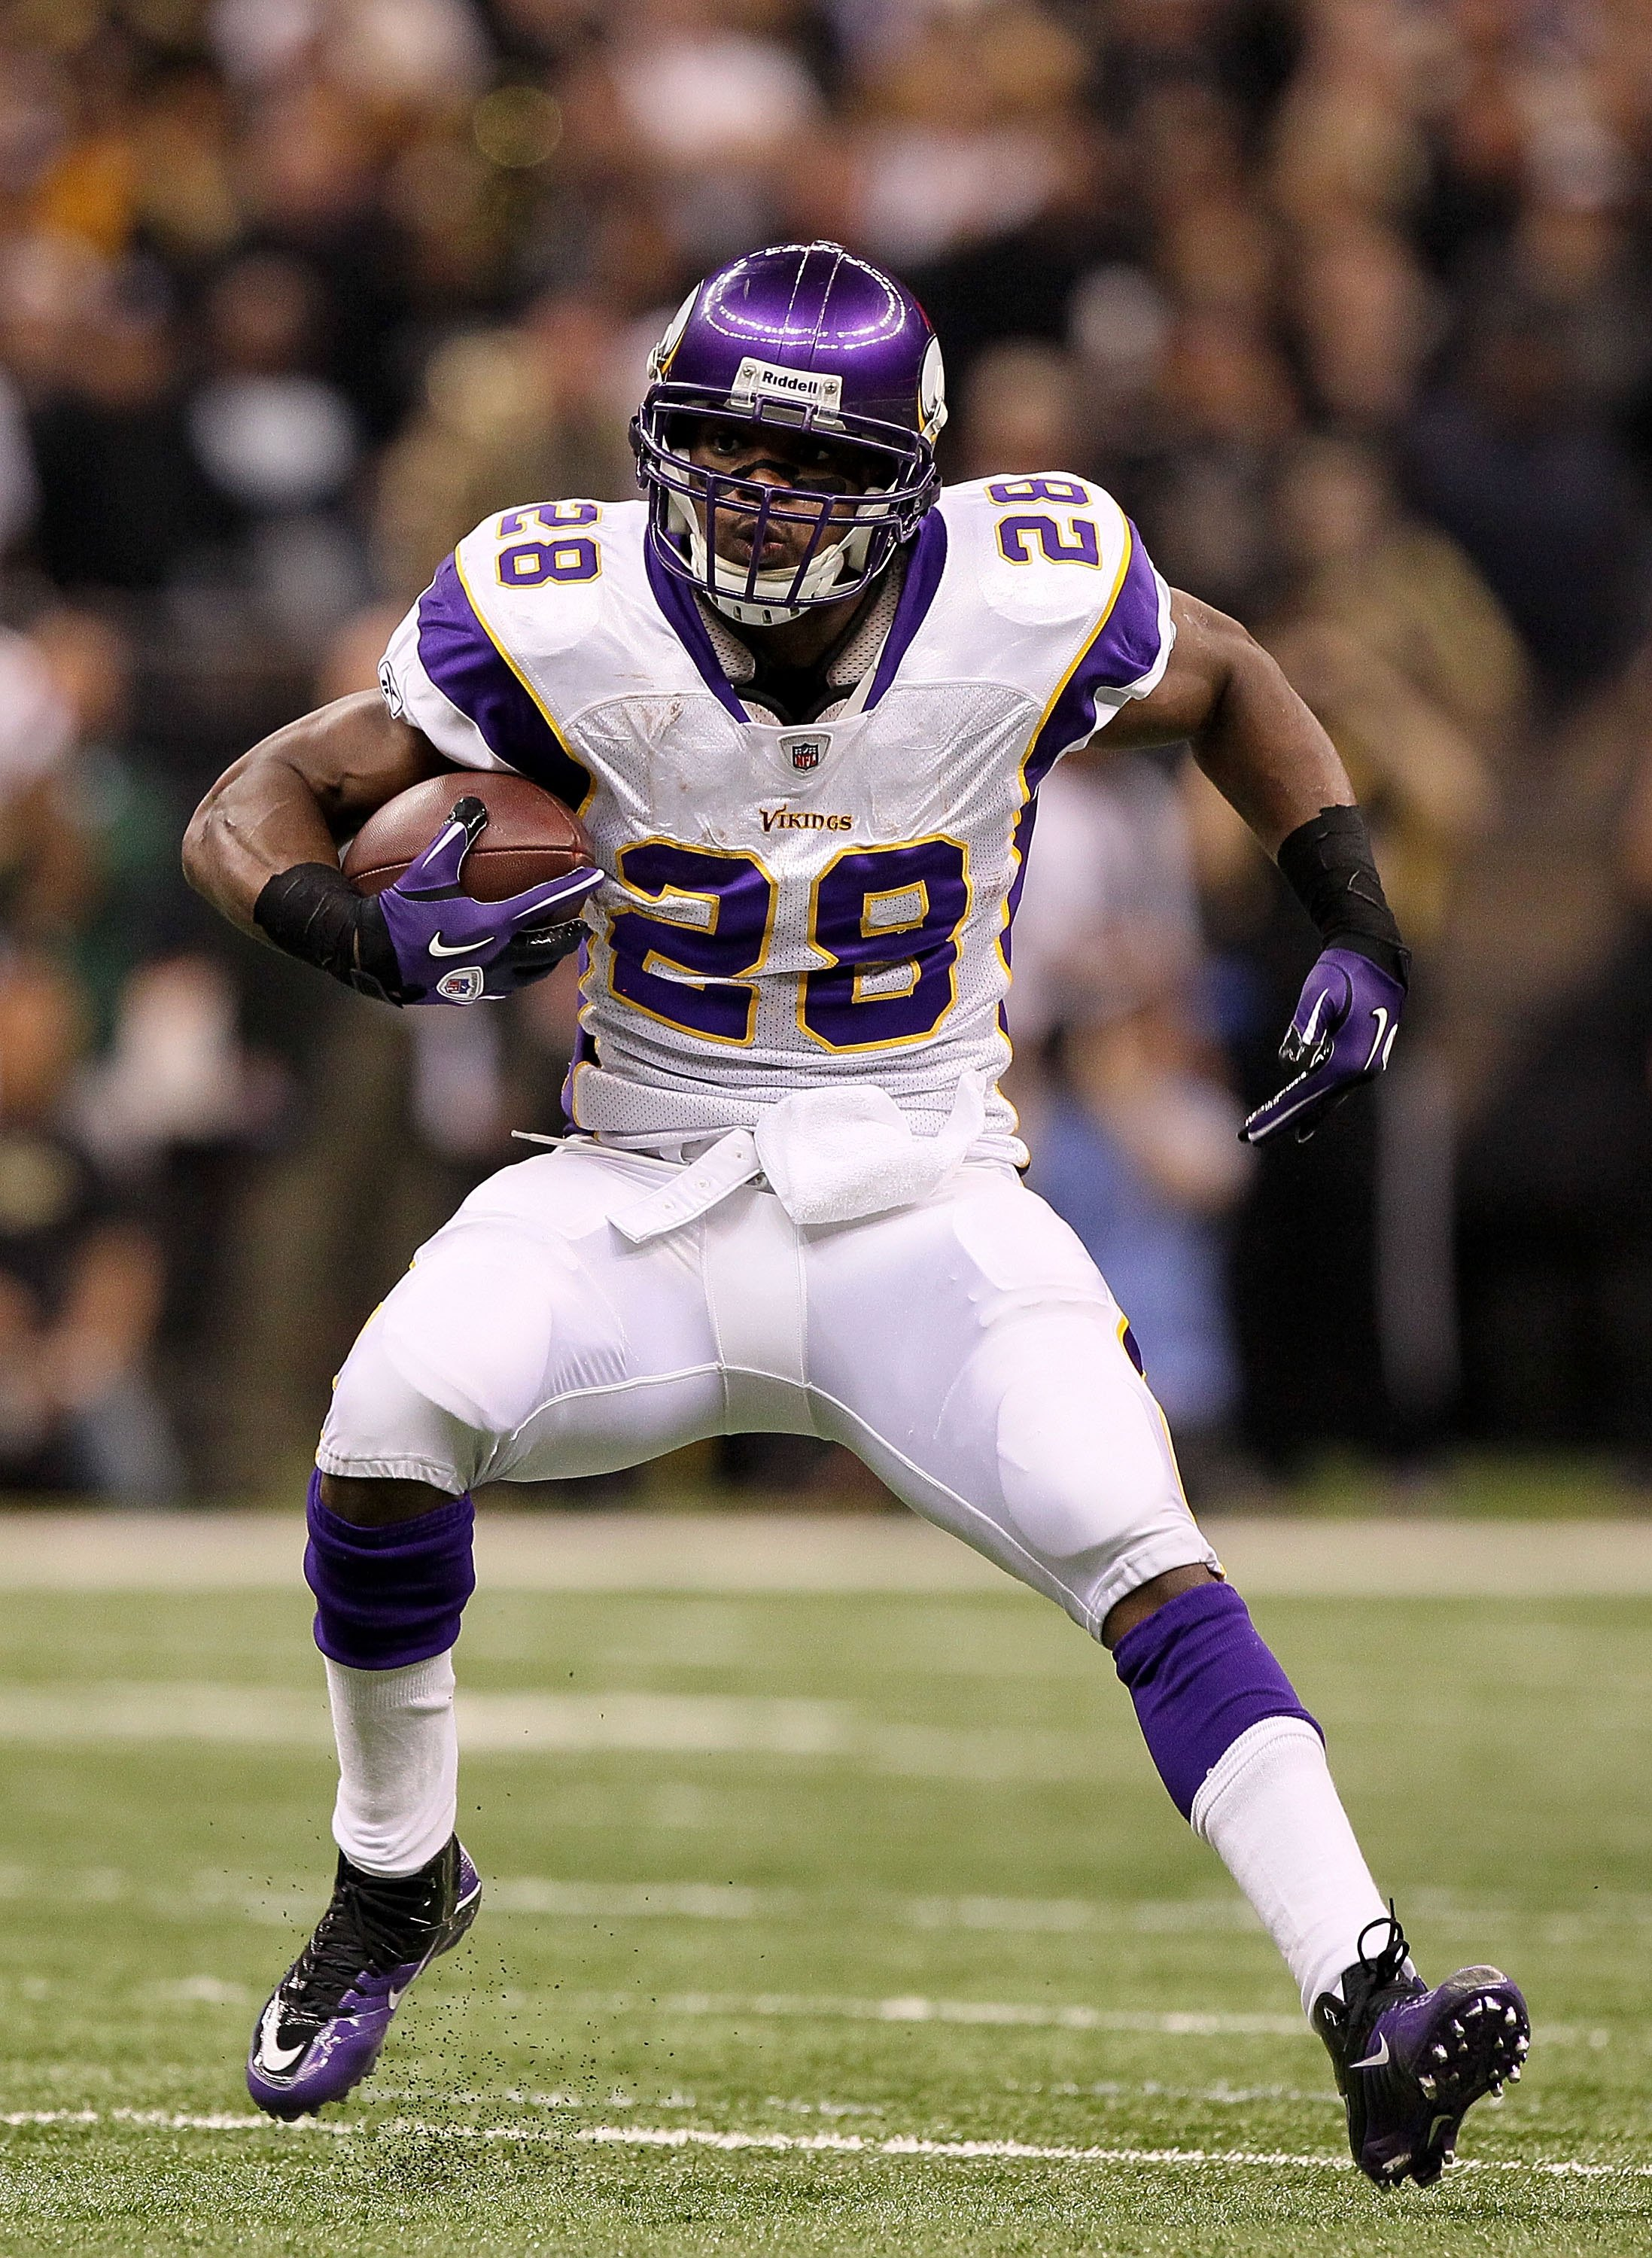 NEW ORLEANS - JANUARY 24:  Adrian Peterson #28 of the Minnesota Vikings runs with the ball against the New Orleans Saints during the NFC Championship Game at the Louisiana Superdome on January 24, 2010 in New Orleans, Louisiana. The Saints won 31-28 in ov